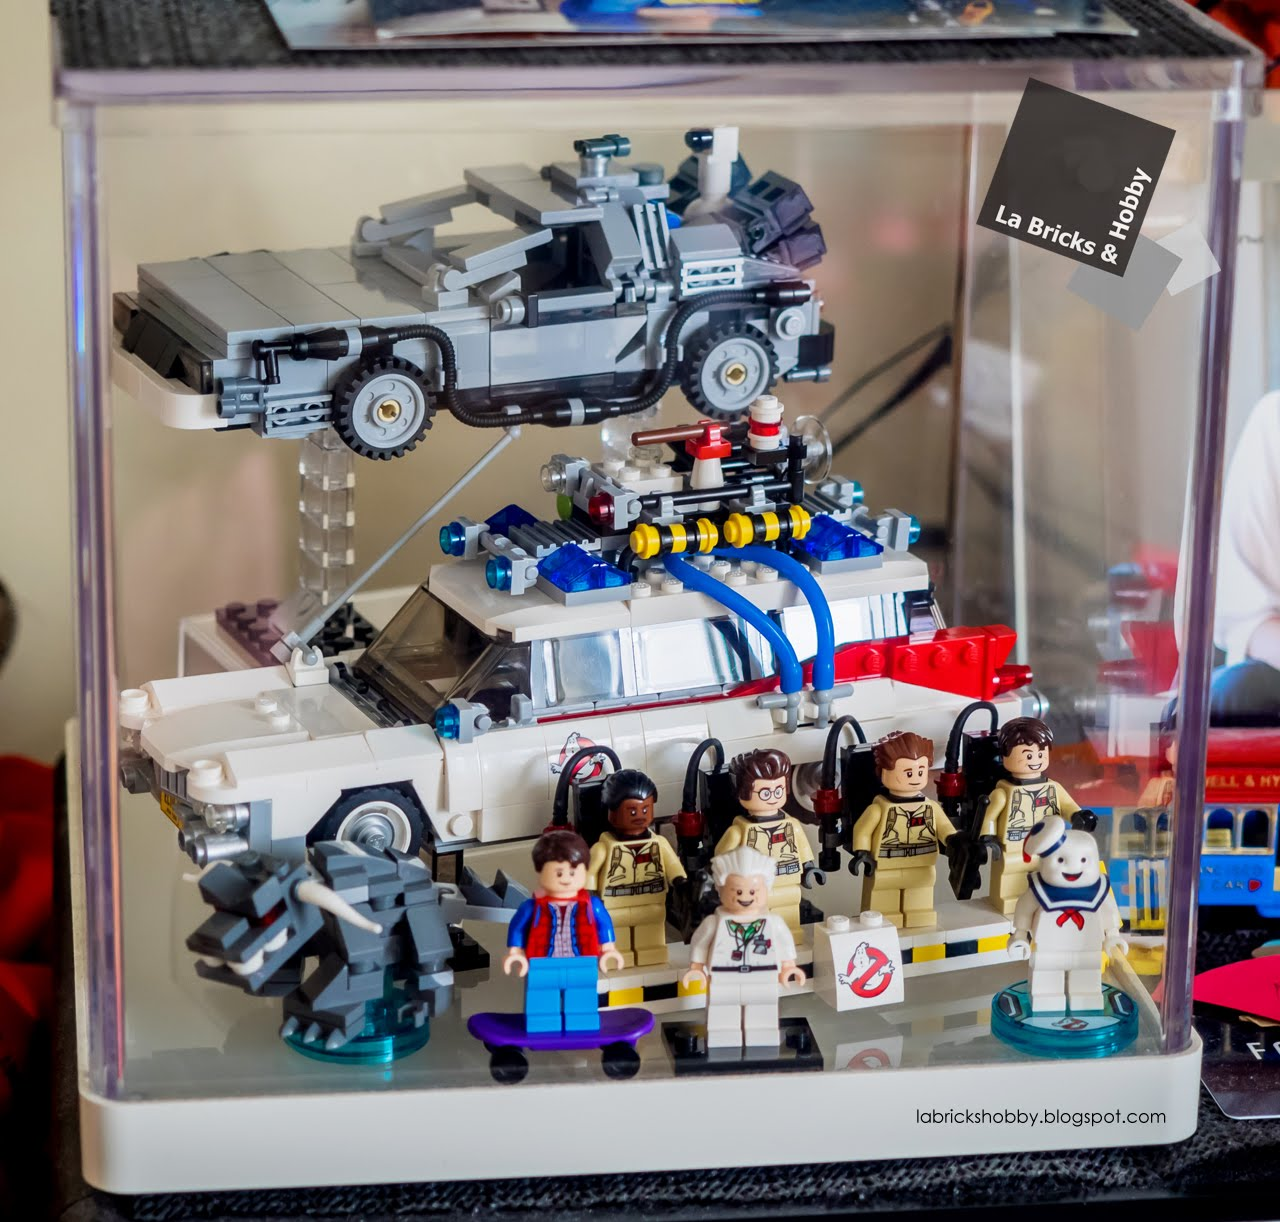 La Bricks Amp Hobby Lego The Delorean Time Machine